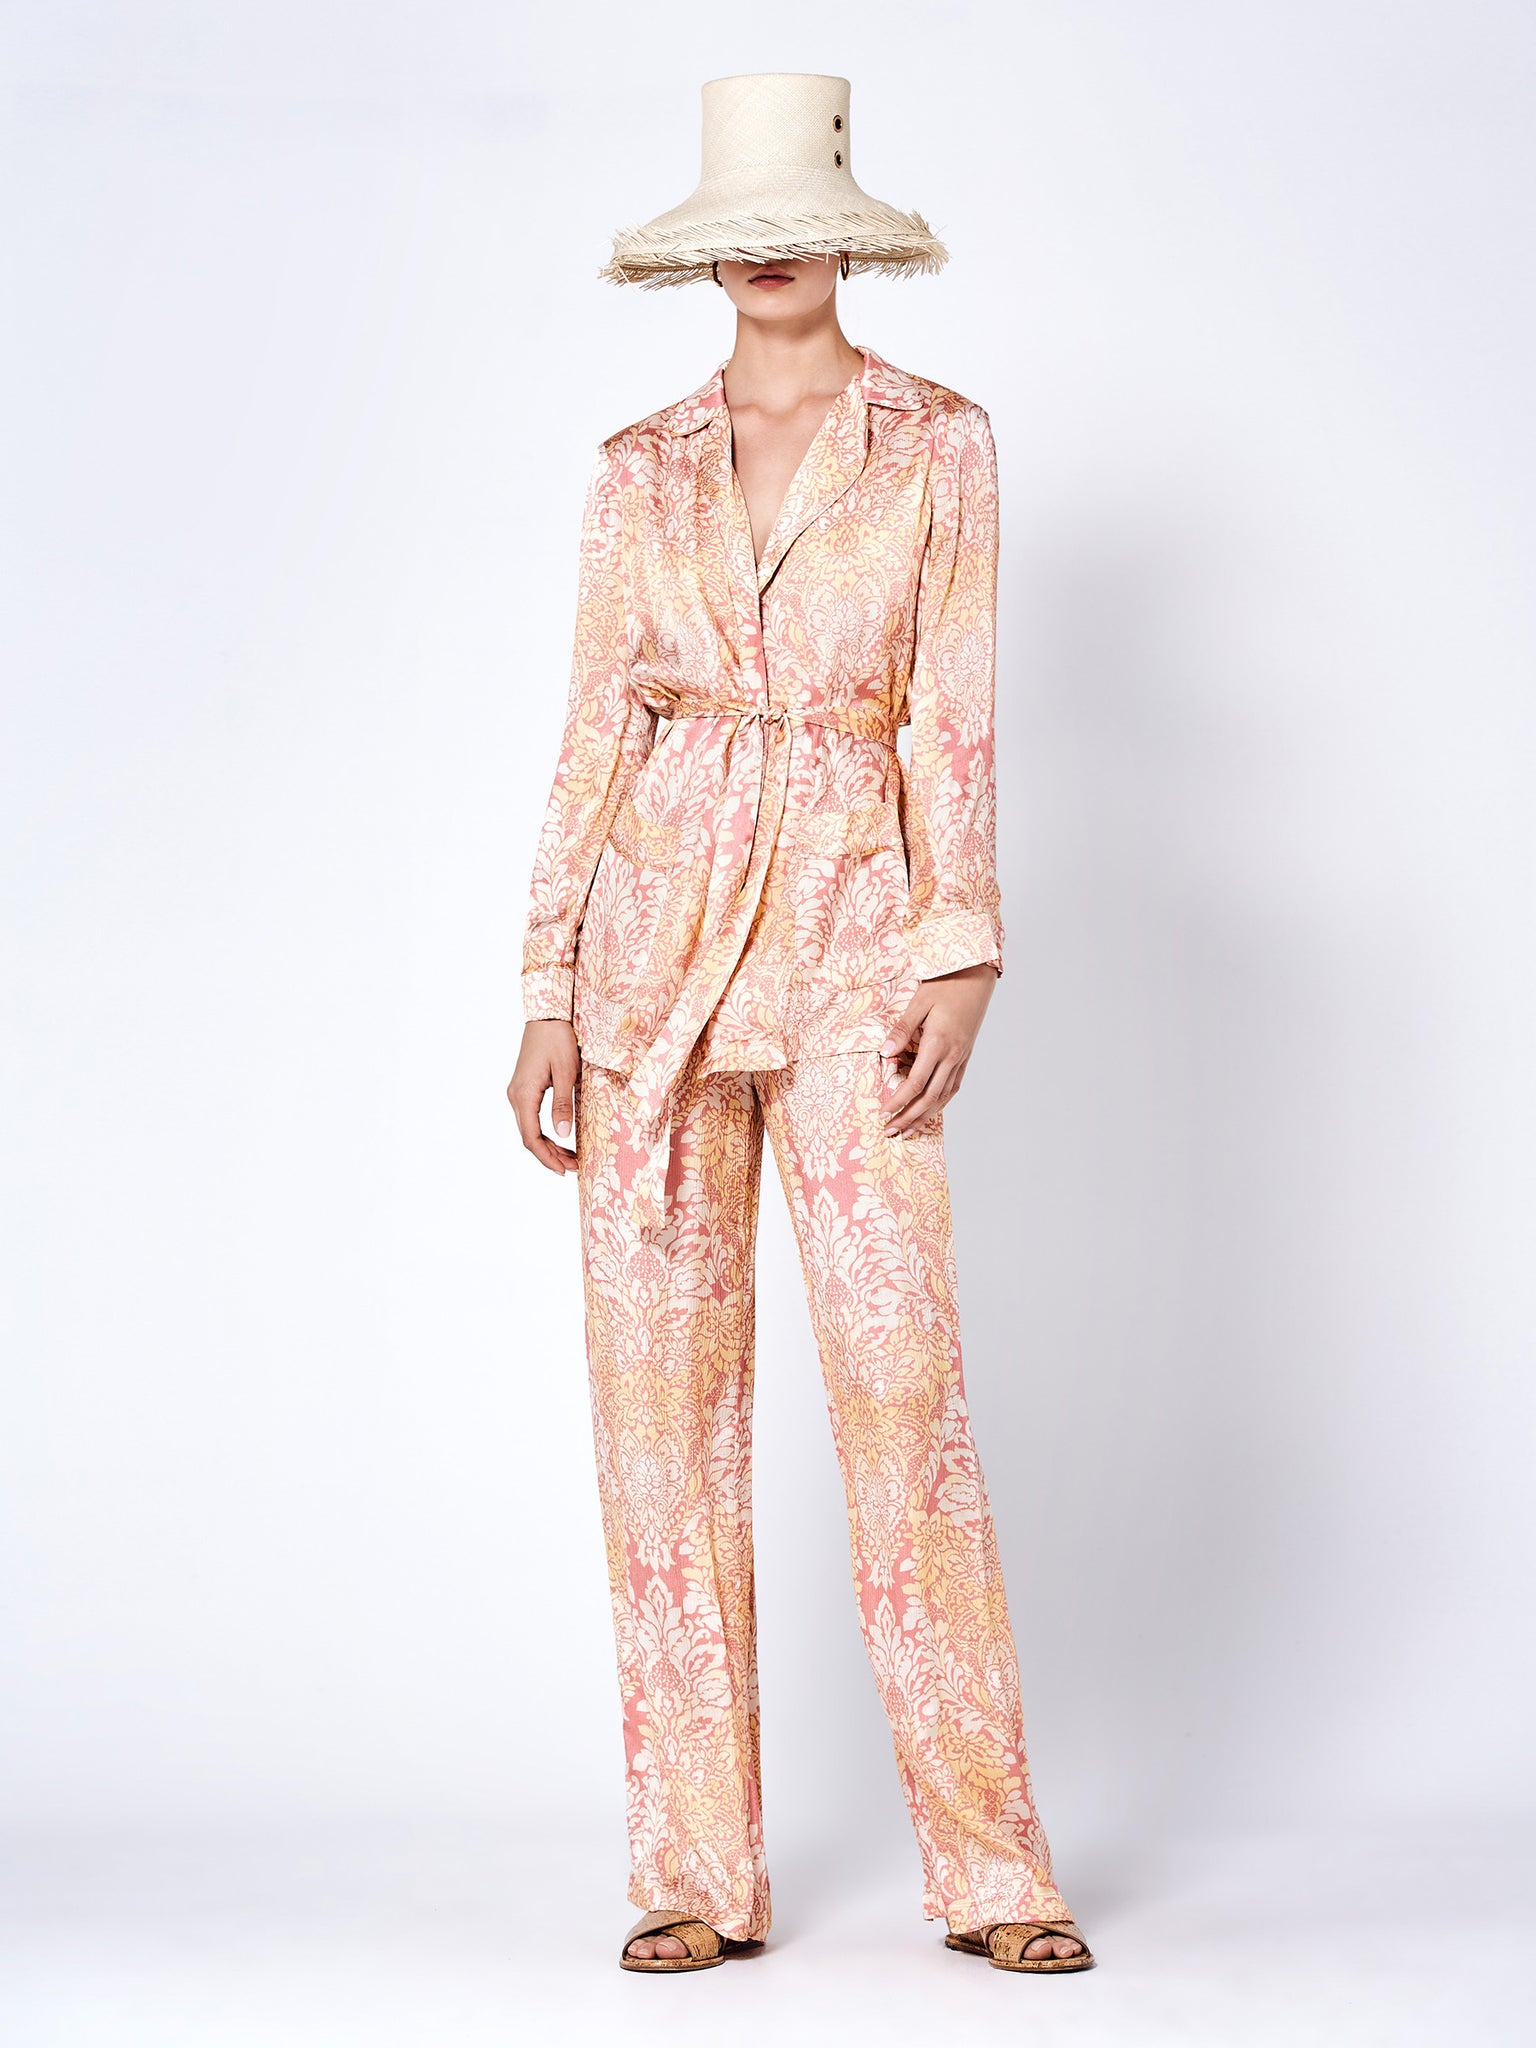 Alexis Aureta Robe in pink and orange floral